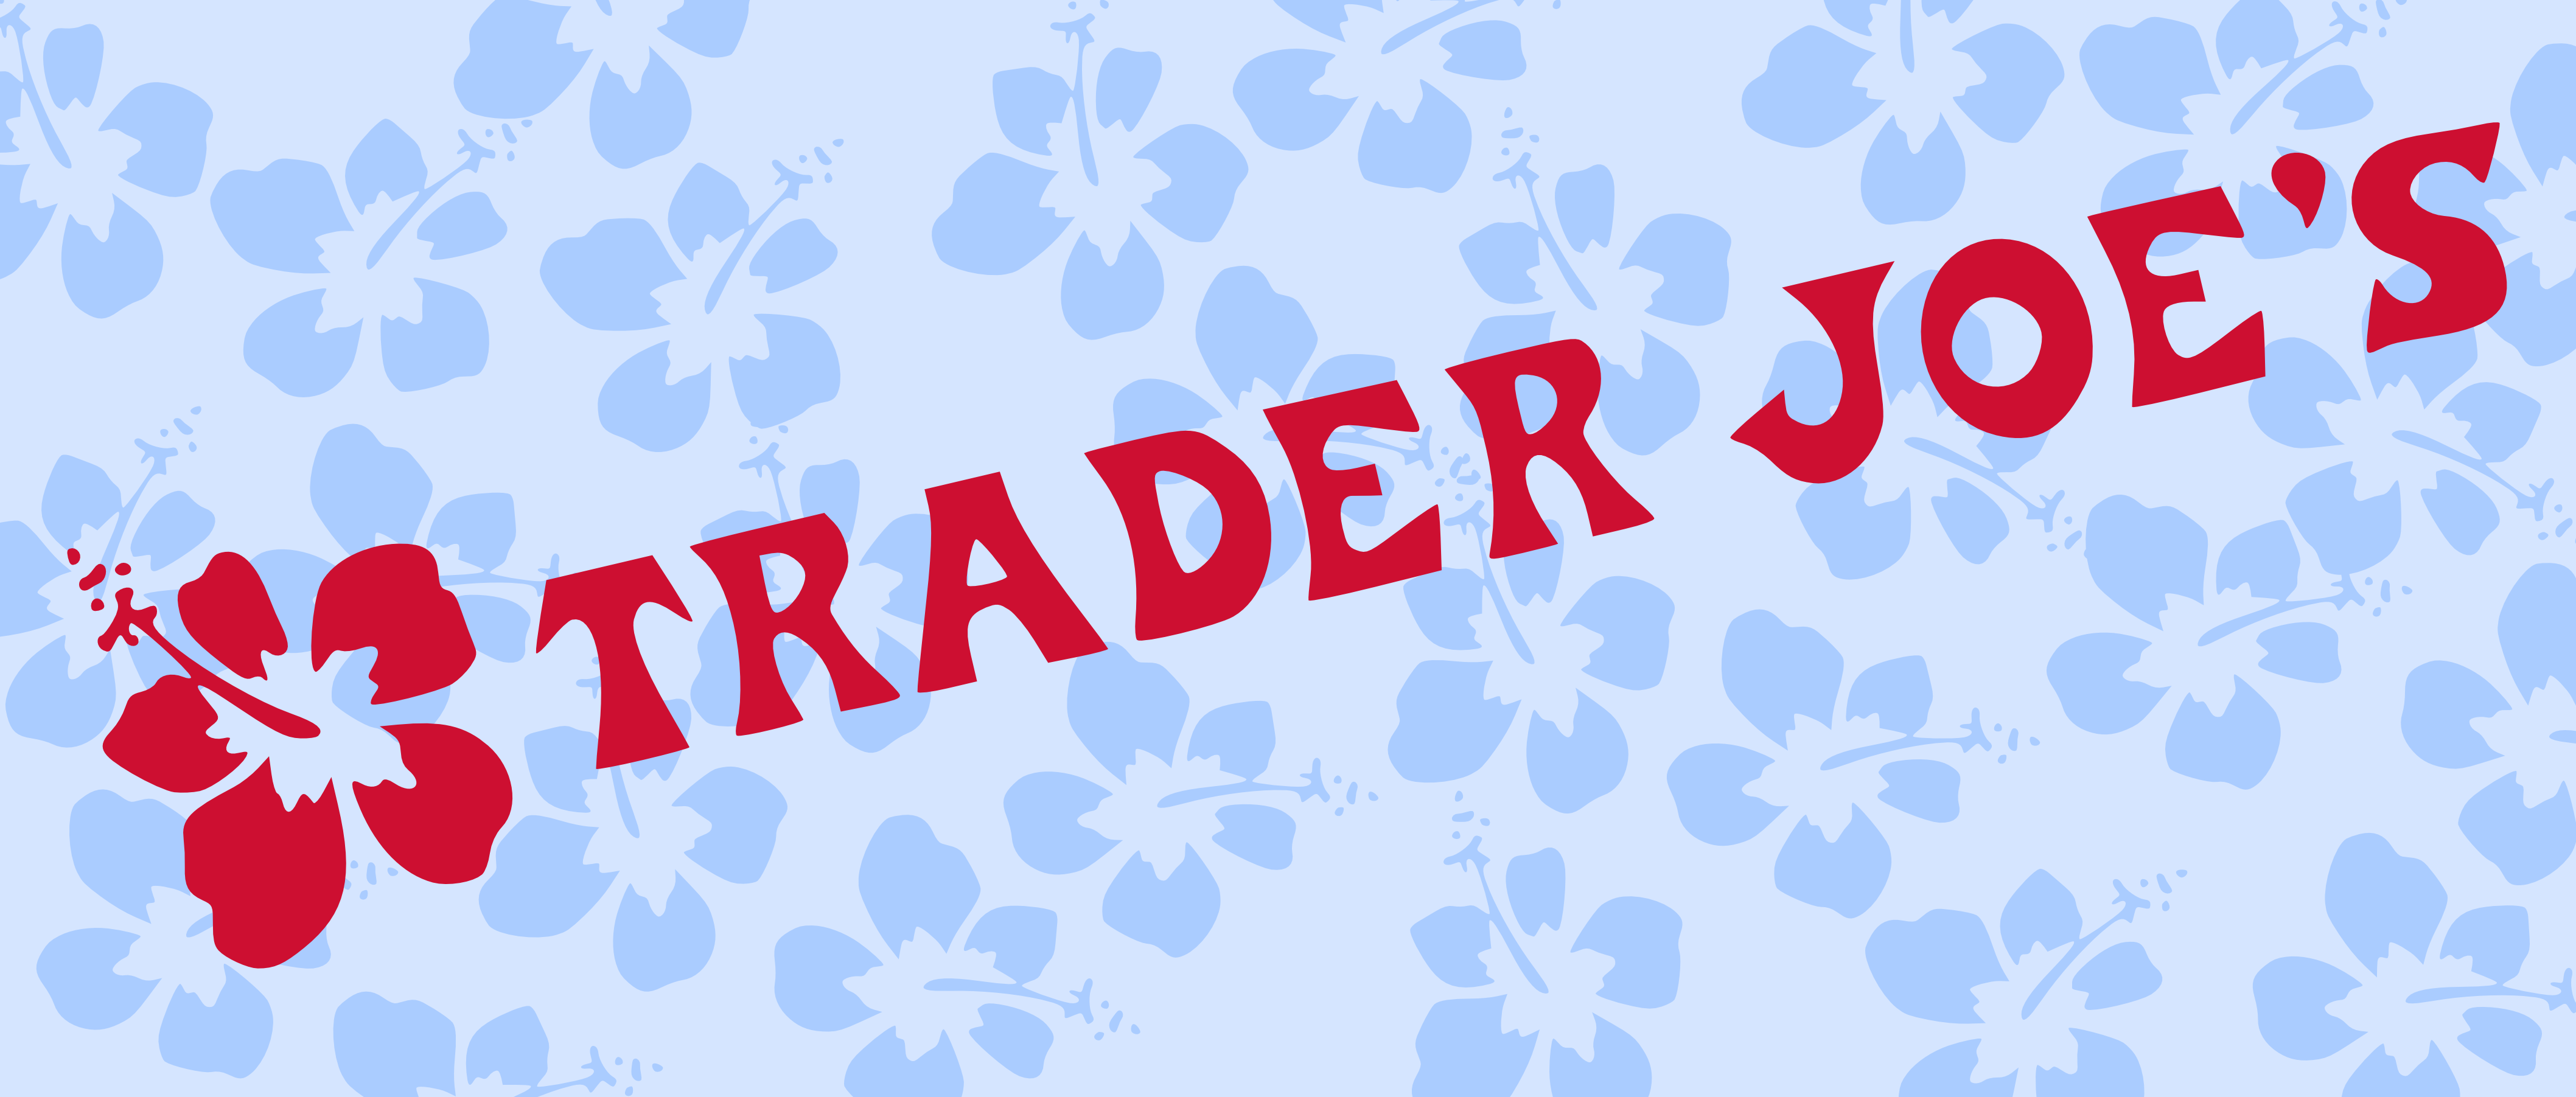 trader joes logo images reverse search